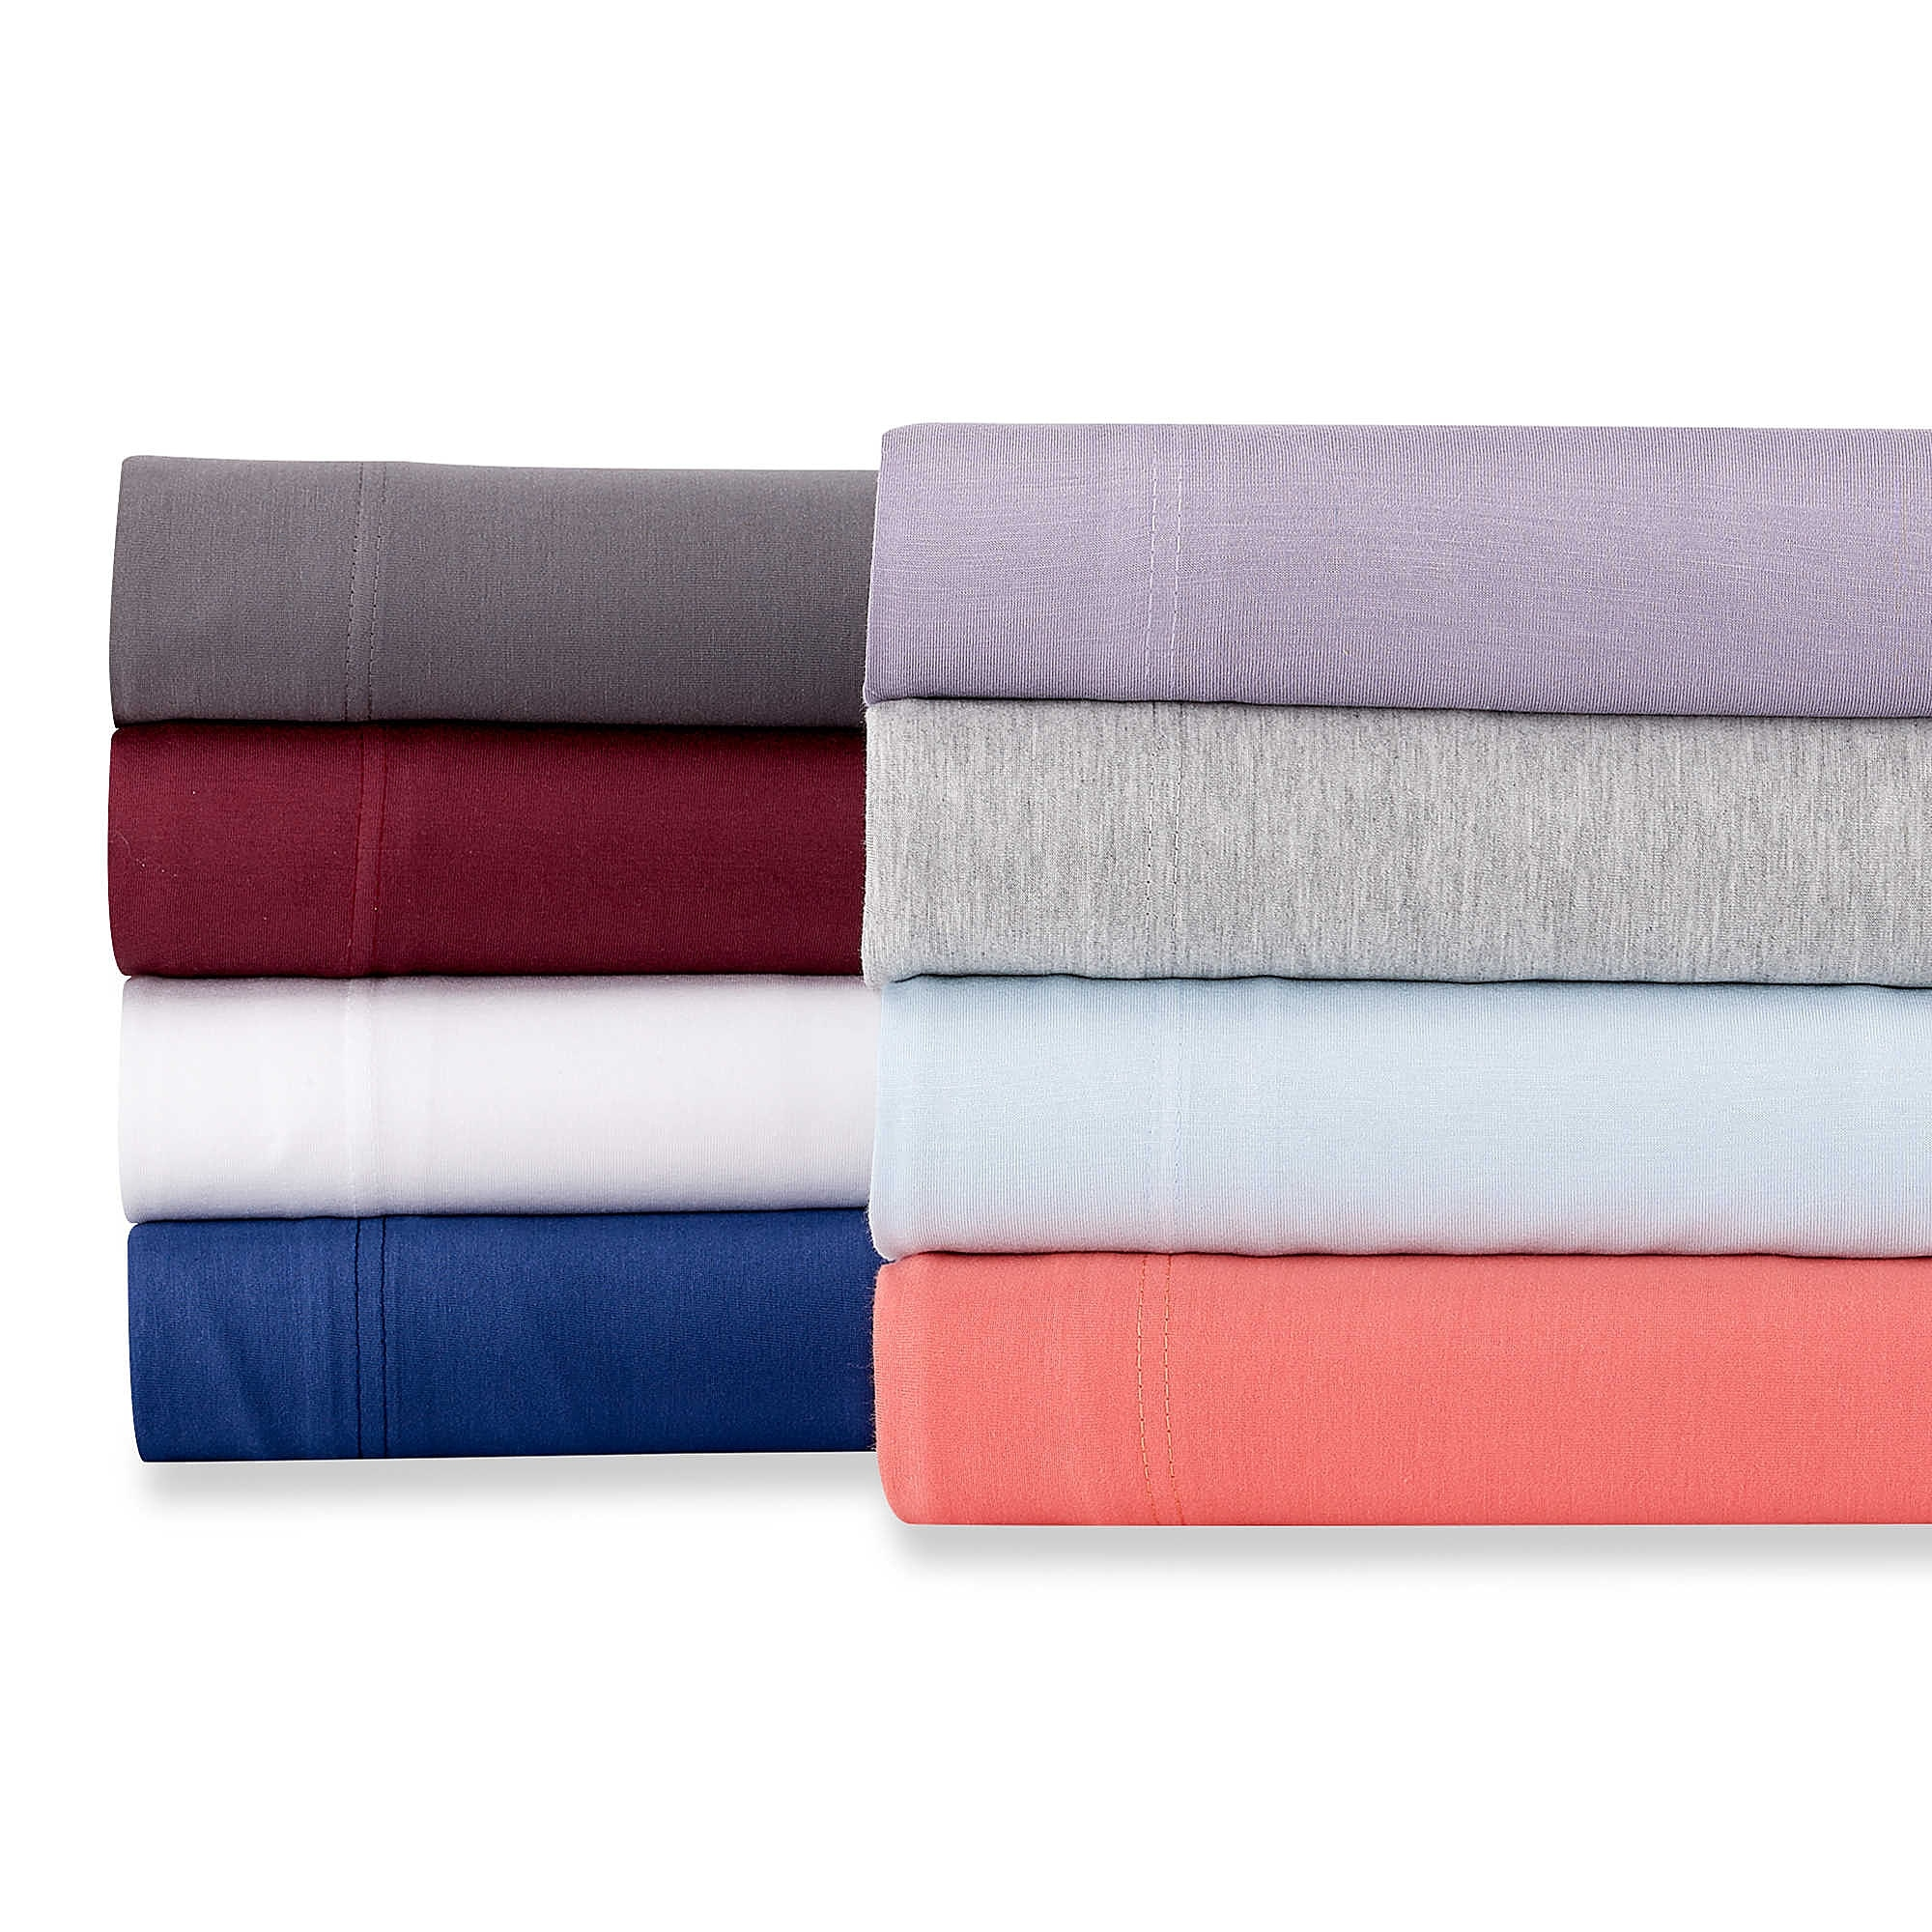 Pure Beech® Jersey Knit Modal Sheet Set Knit jersey